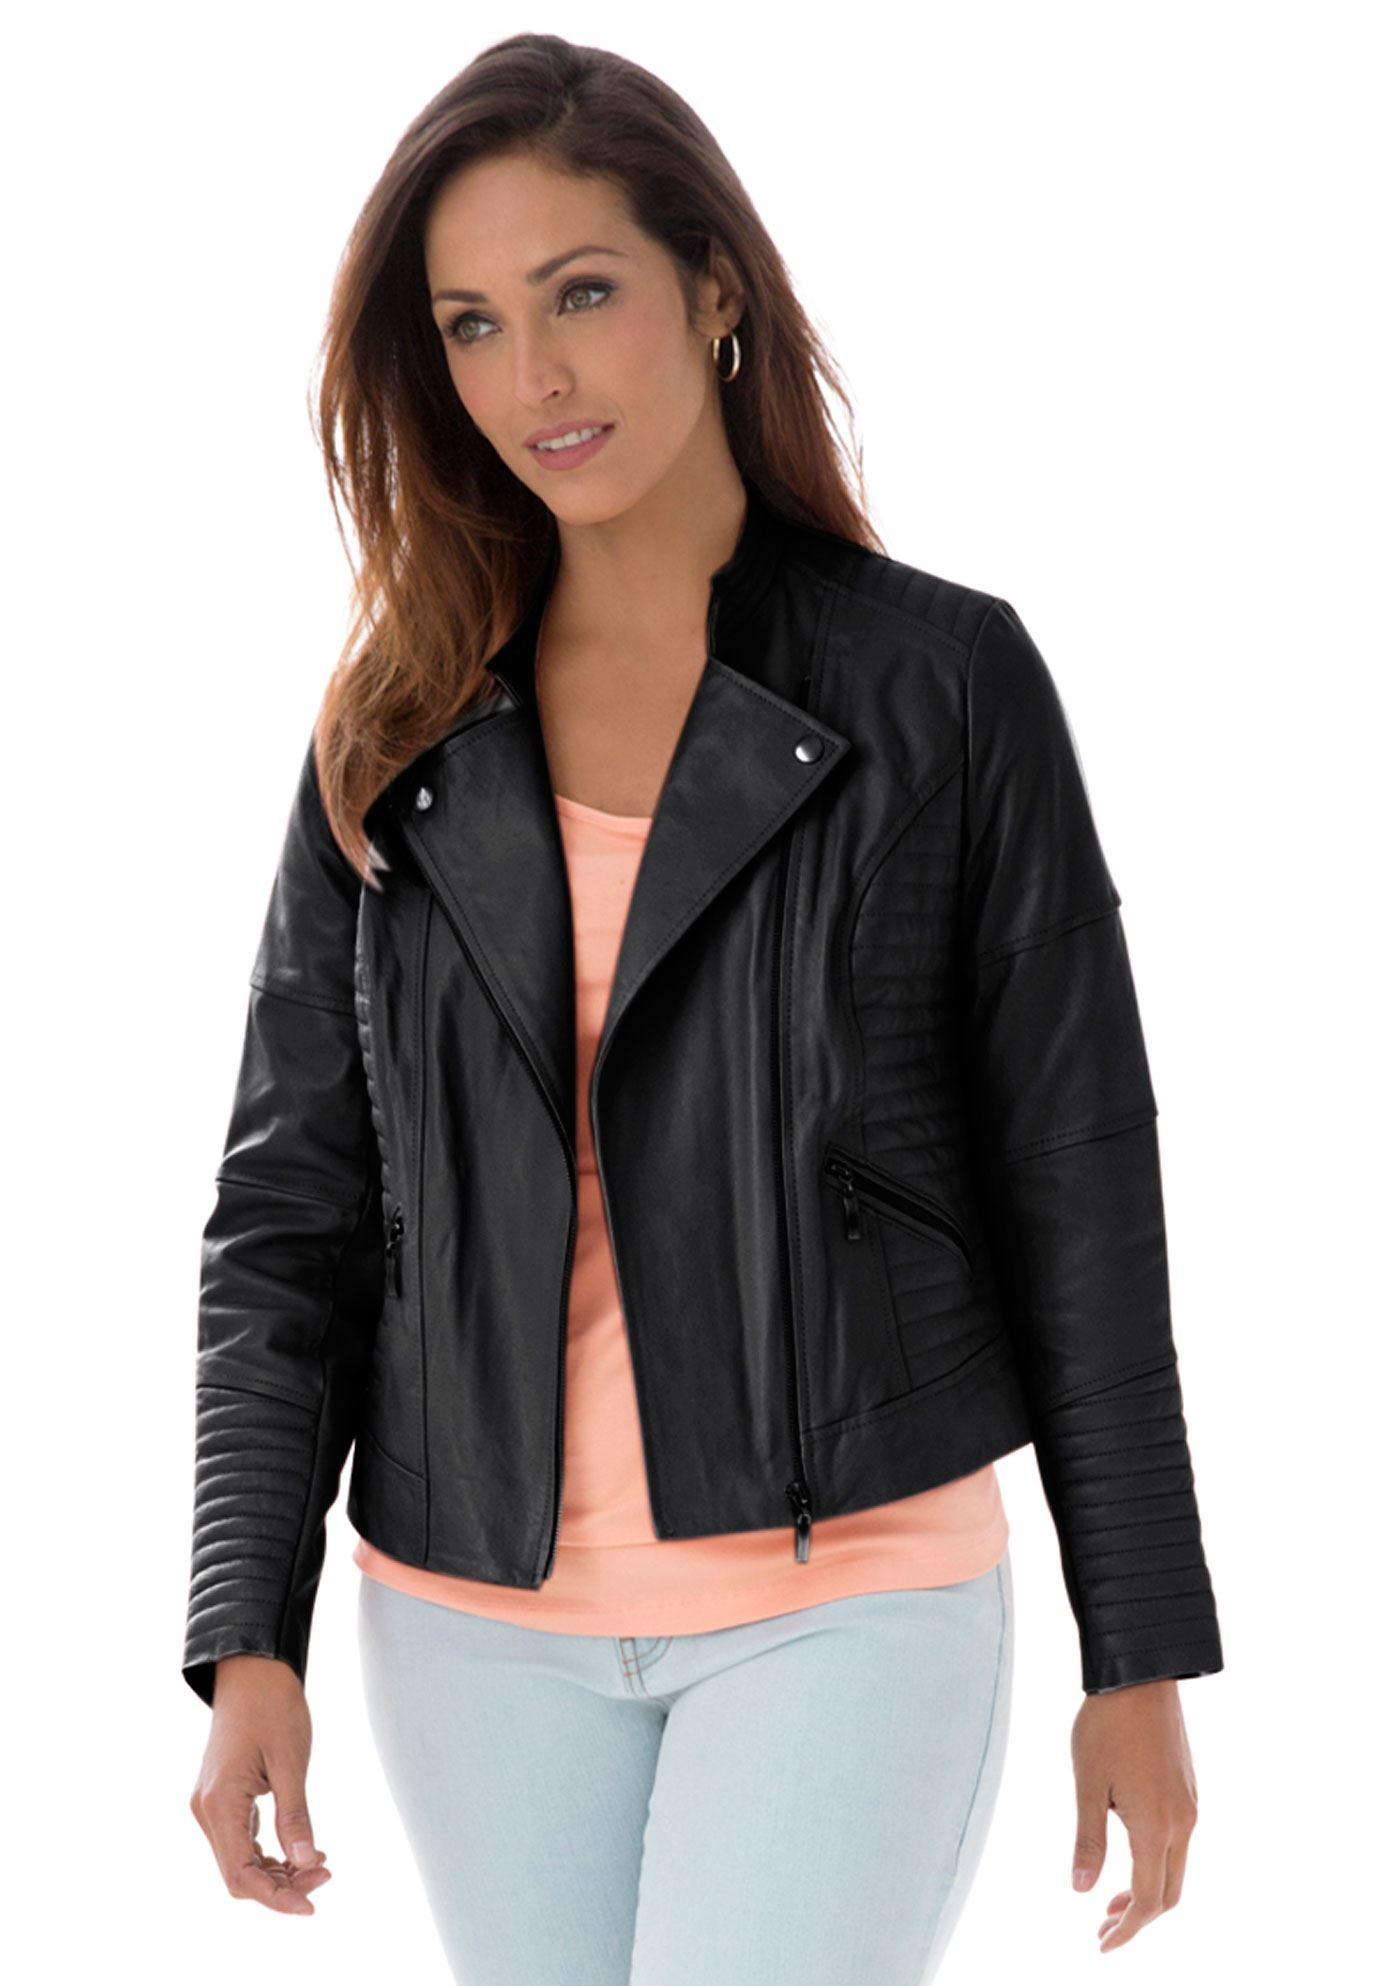 Ultimate Leather Motorcycle Jacket Best leather jackets